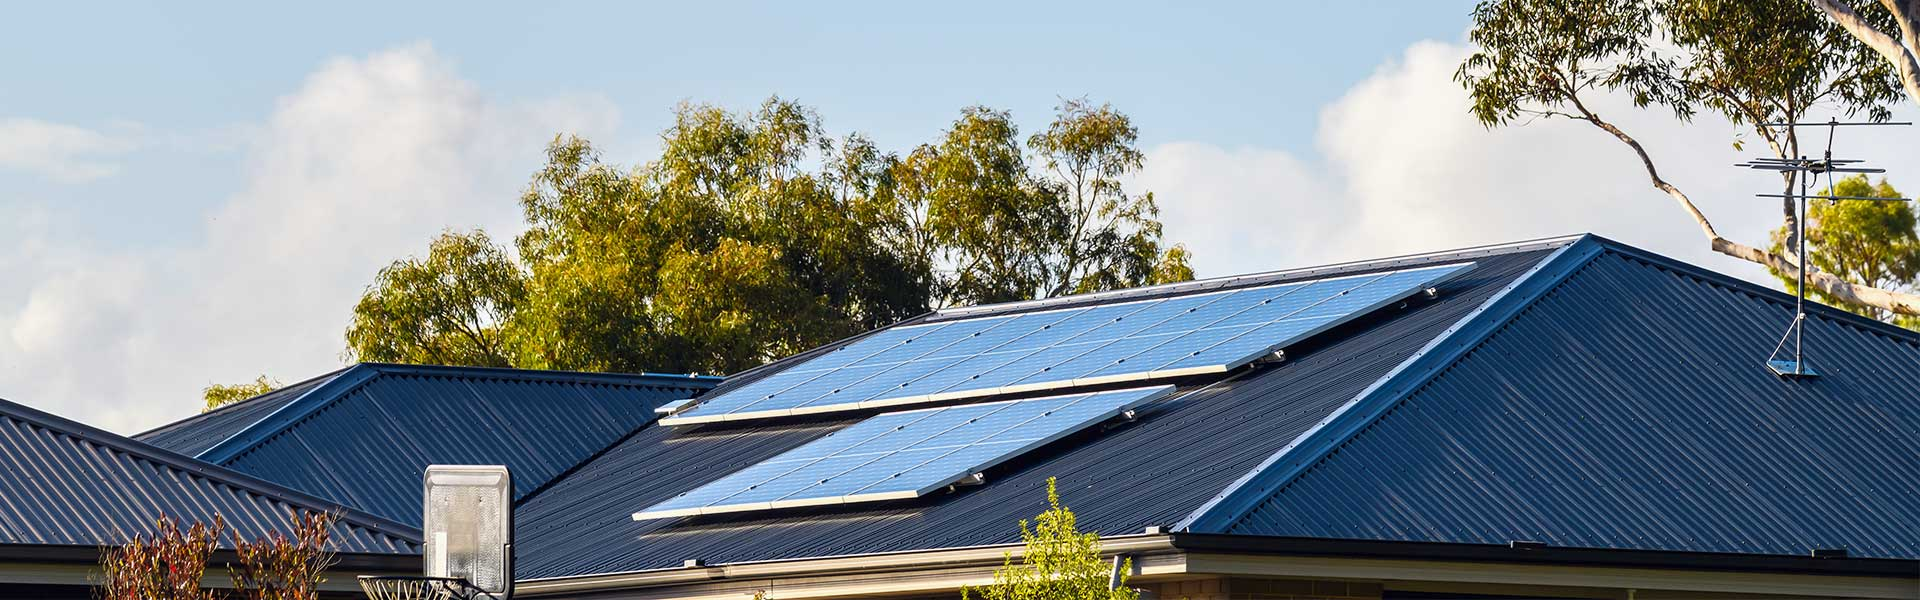 One Solar About Residential Home